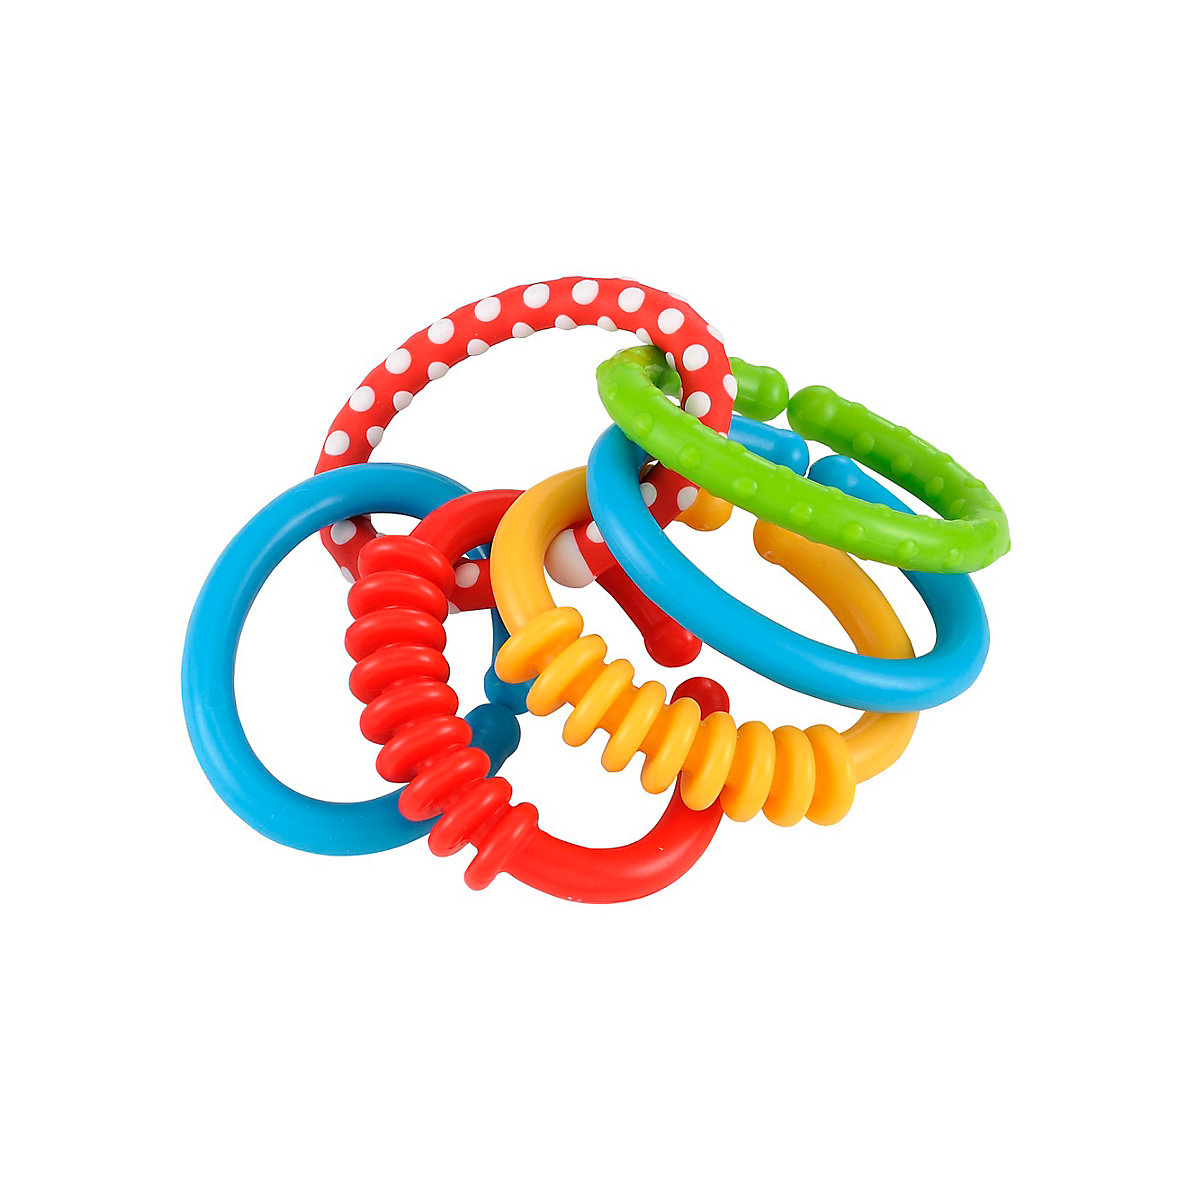 New ELC Boys and Girls Blossom Farm Loopy Links Toy From Birth - Toy Gifts